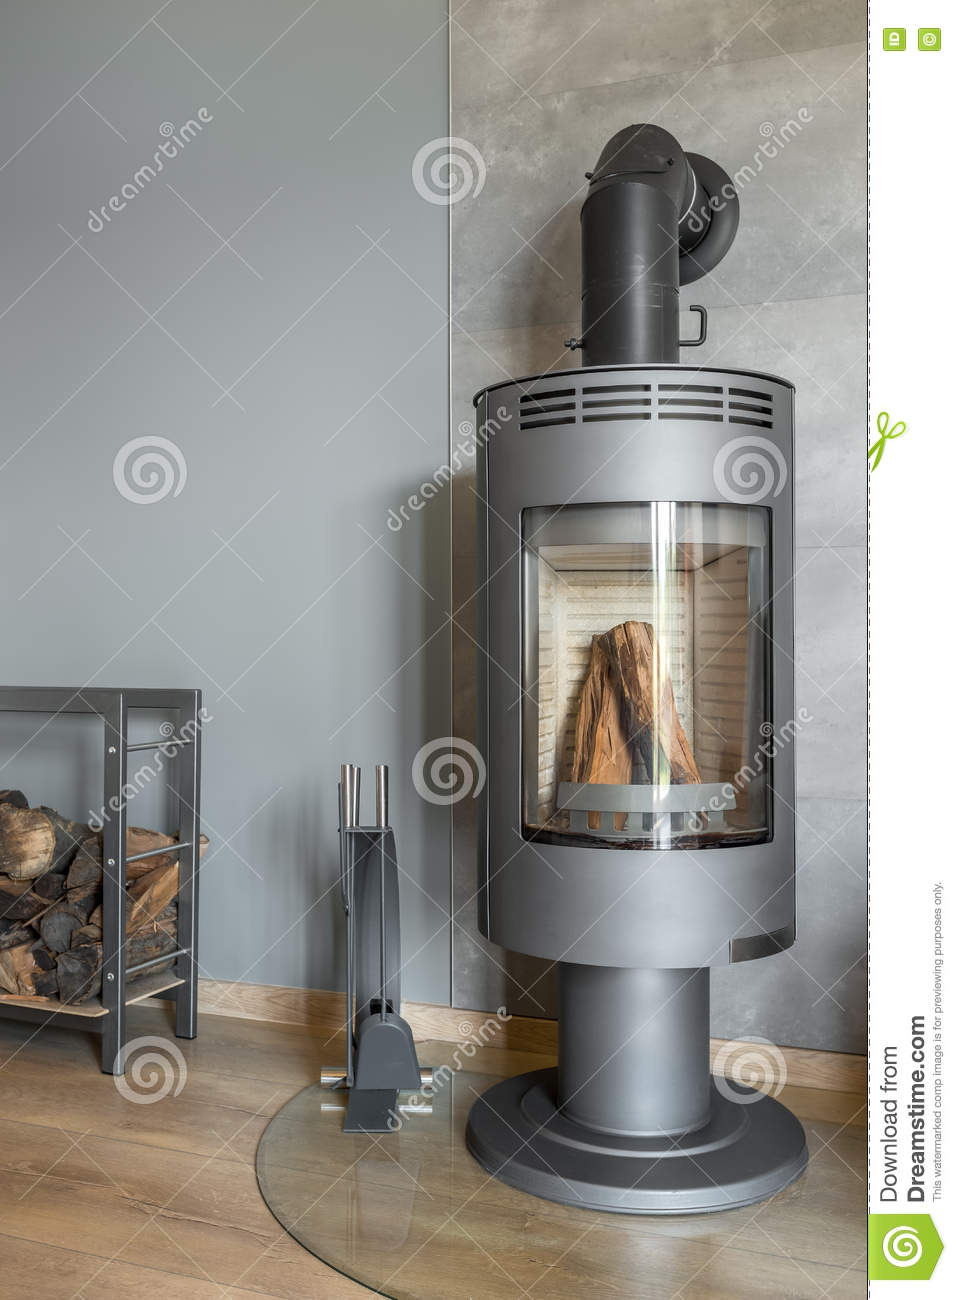 a8495bdfd059 New Design Trendy Fireplace Stock Photo - Image of contemporary ...